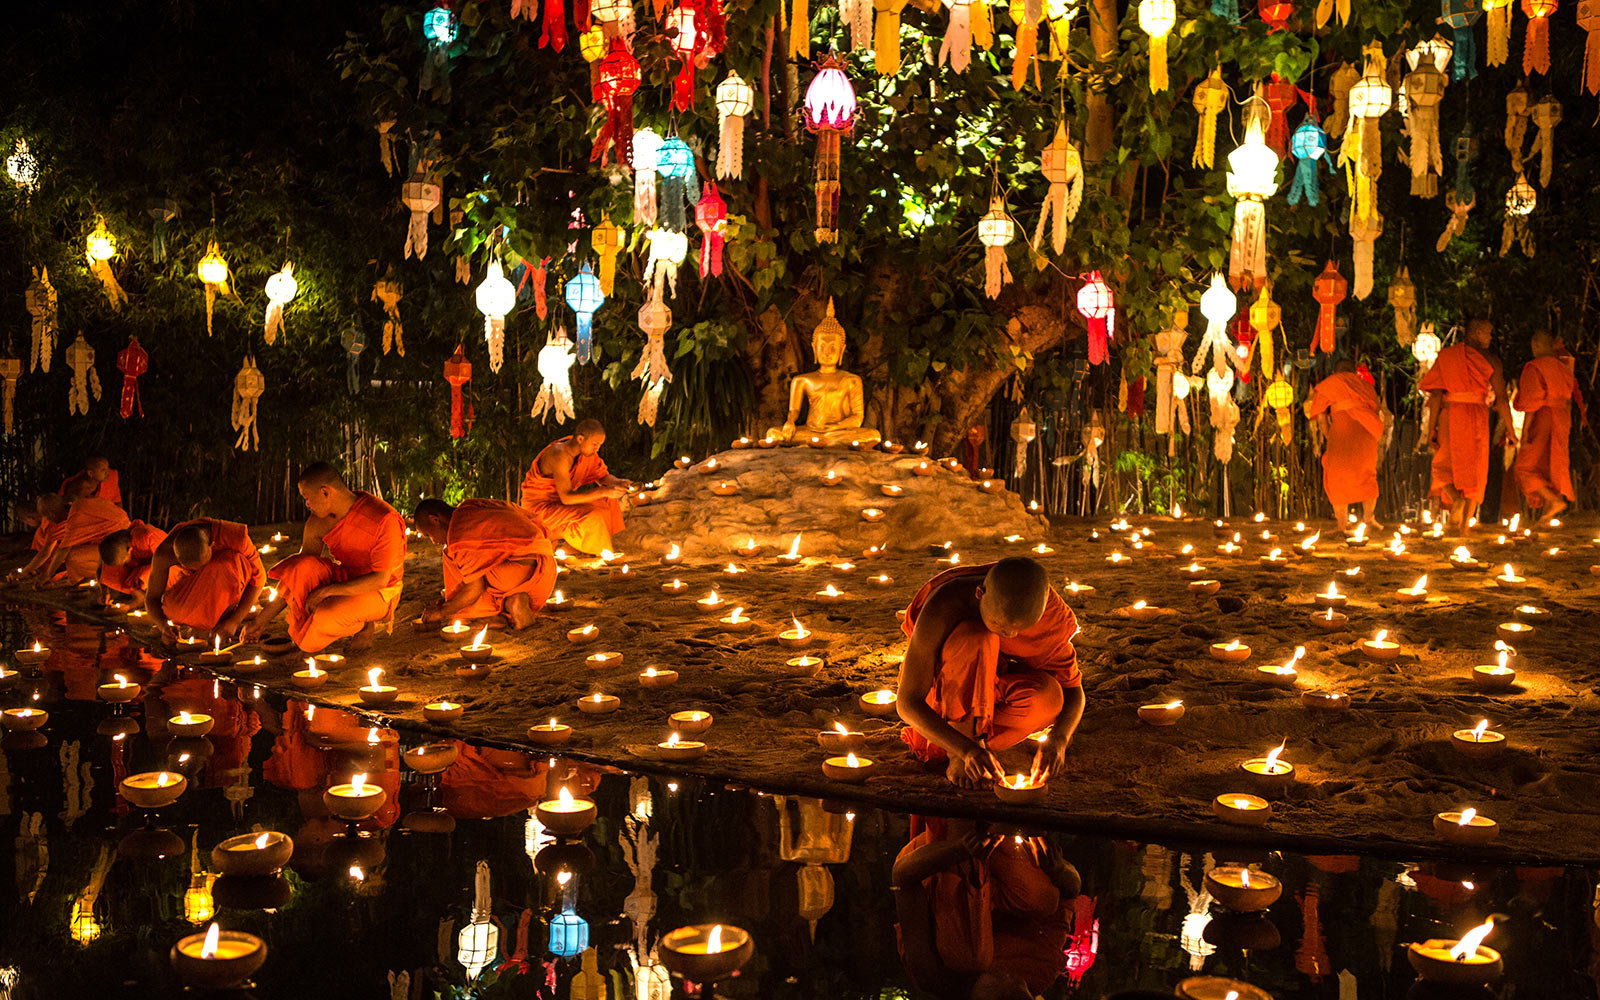 Status of events and festivals during Thailand's Mourning Period